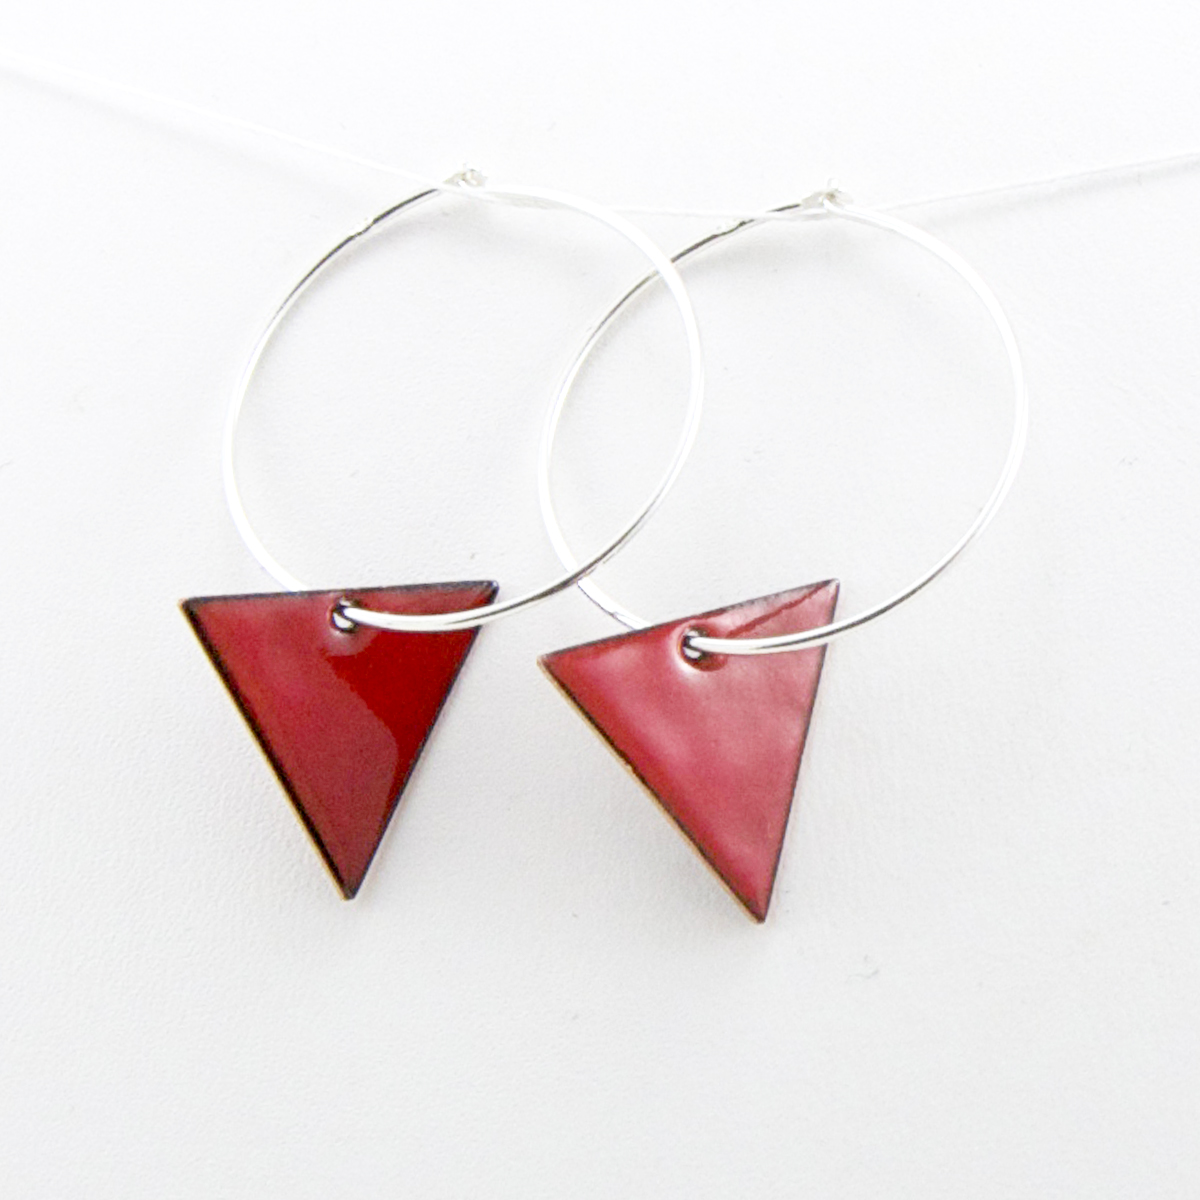 trinagle hoops red earrings Iris Willow.jpg